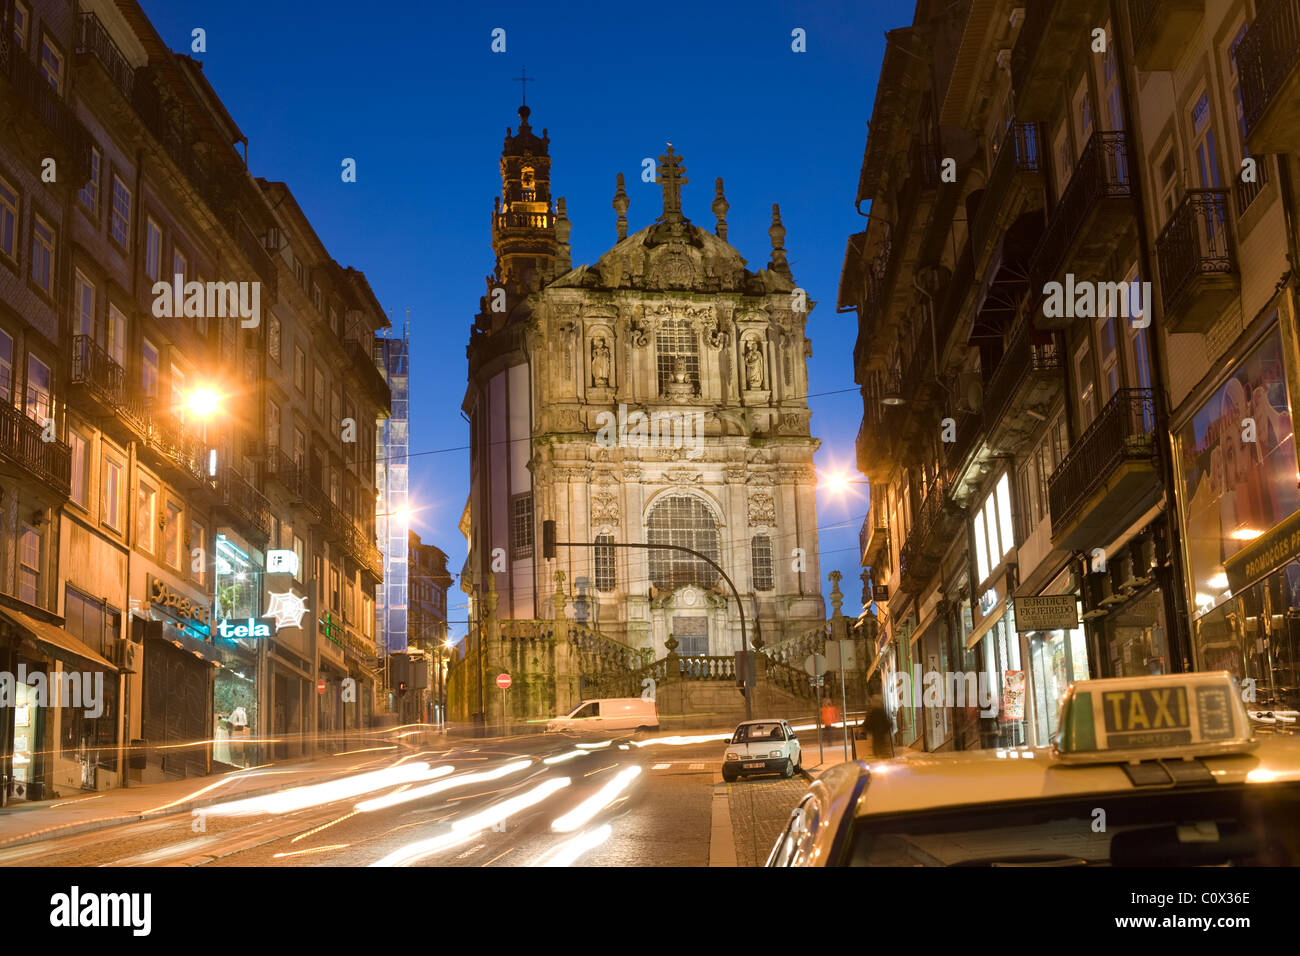 Clerigos Tower and Church, Oporto, Portugal - Stock Image